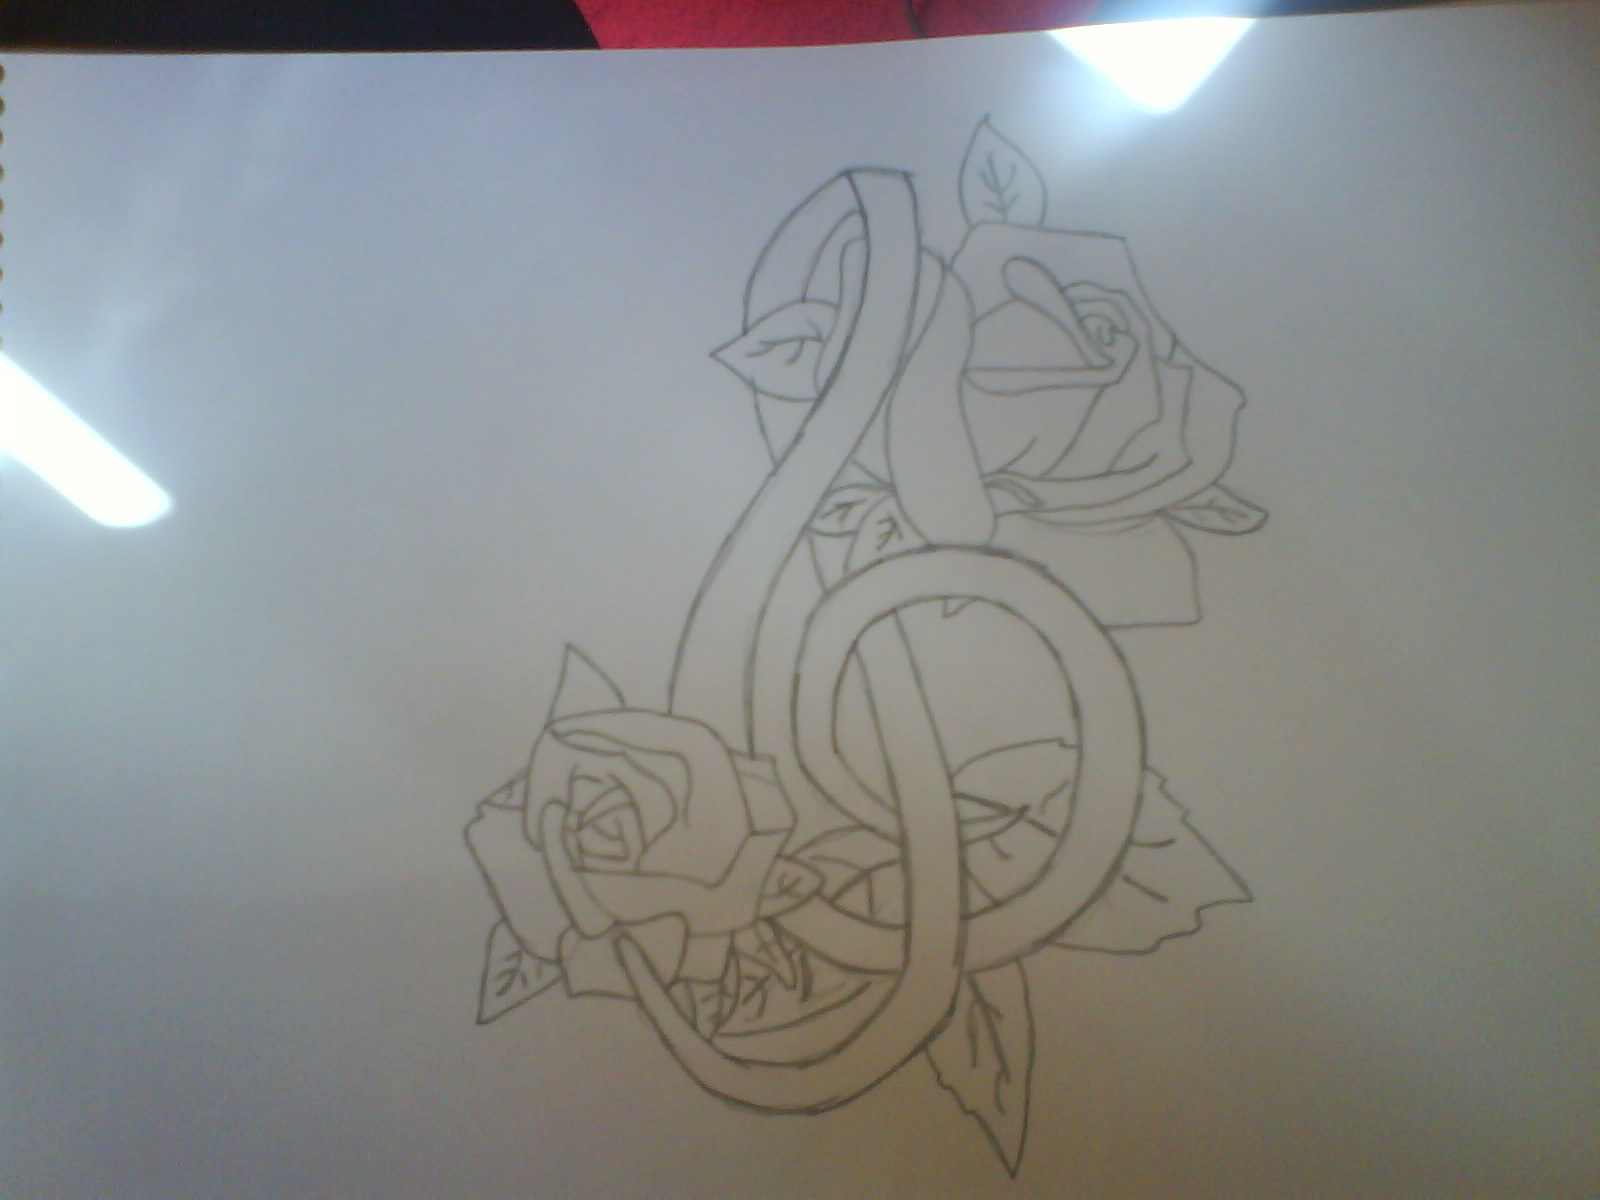 Music symbol and roses tattoo by PLAISTOWKIDD